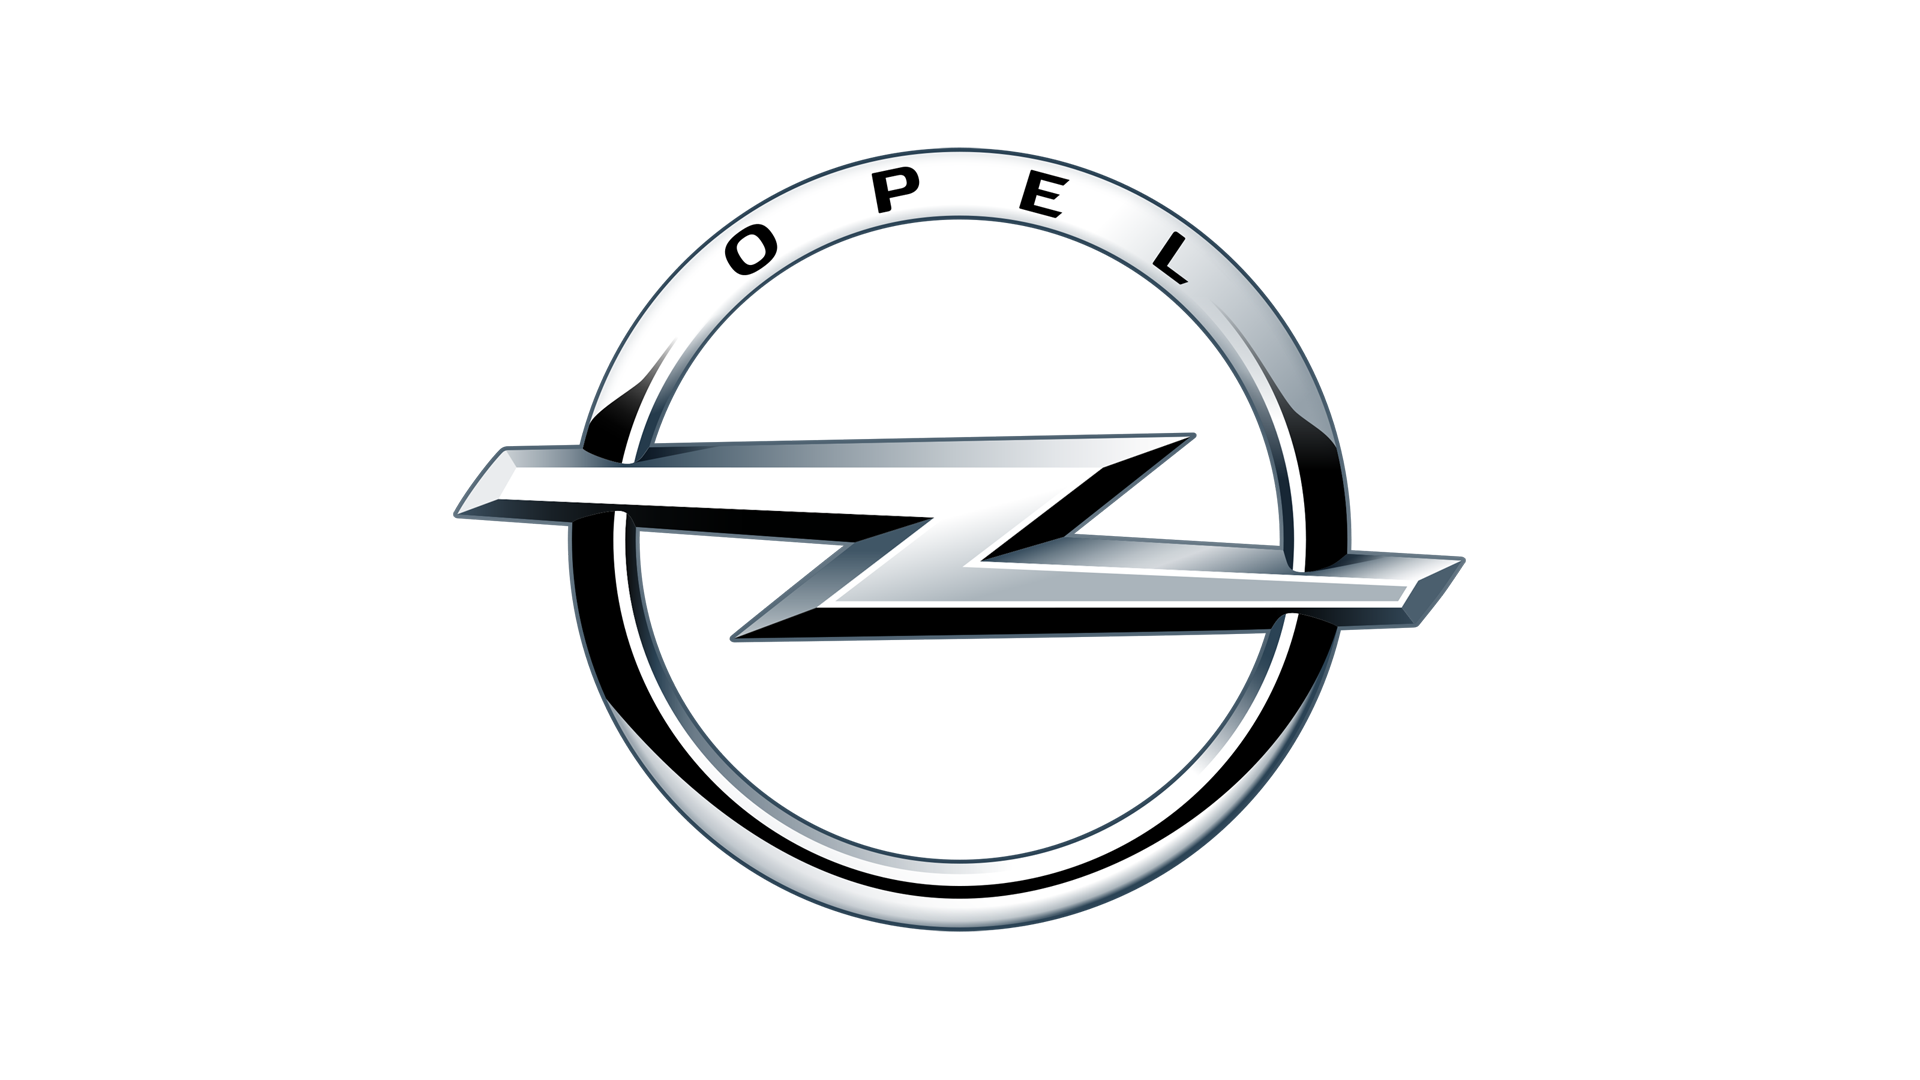 opel logo hd png meaning information. Black Bedroom Furniture Sets. Home Design Ideas